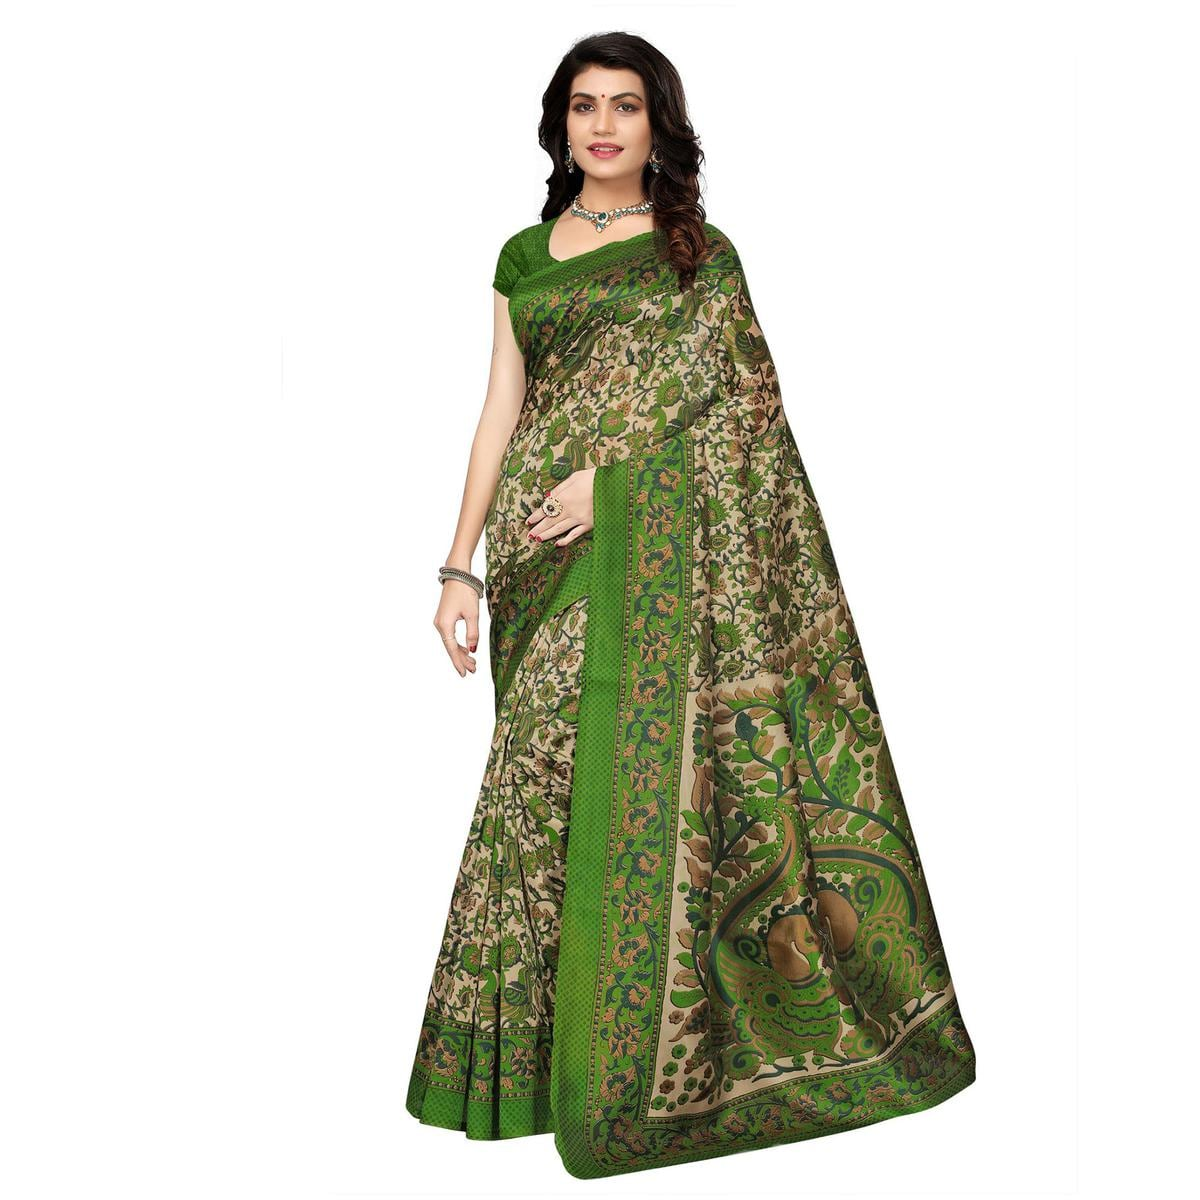 Adorning Pink - Green Festive Wear Printed Saree - Pack of 2